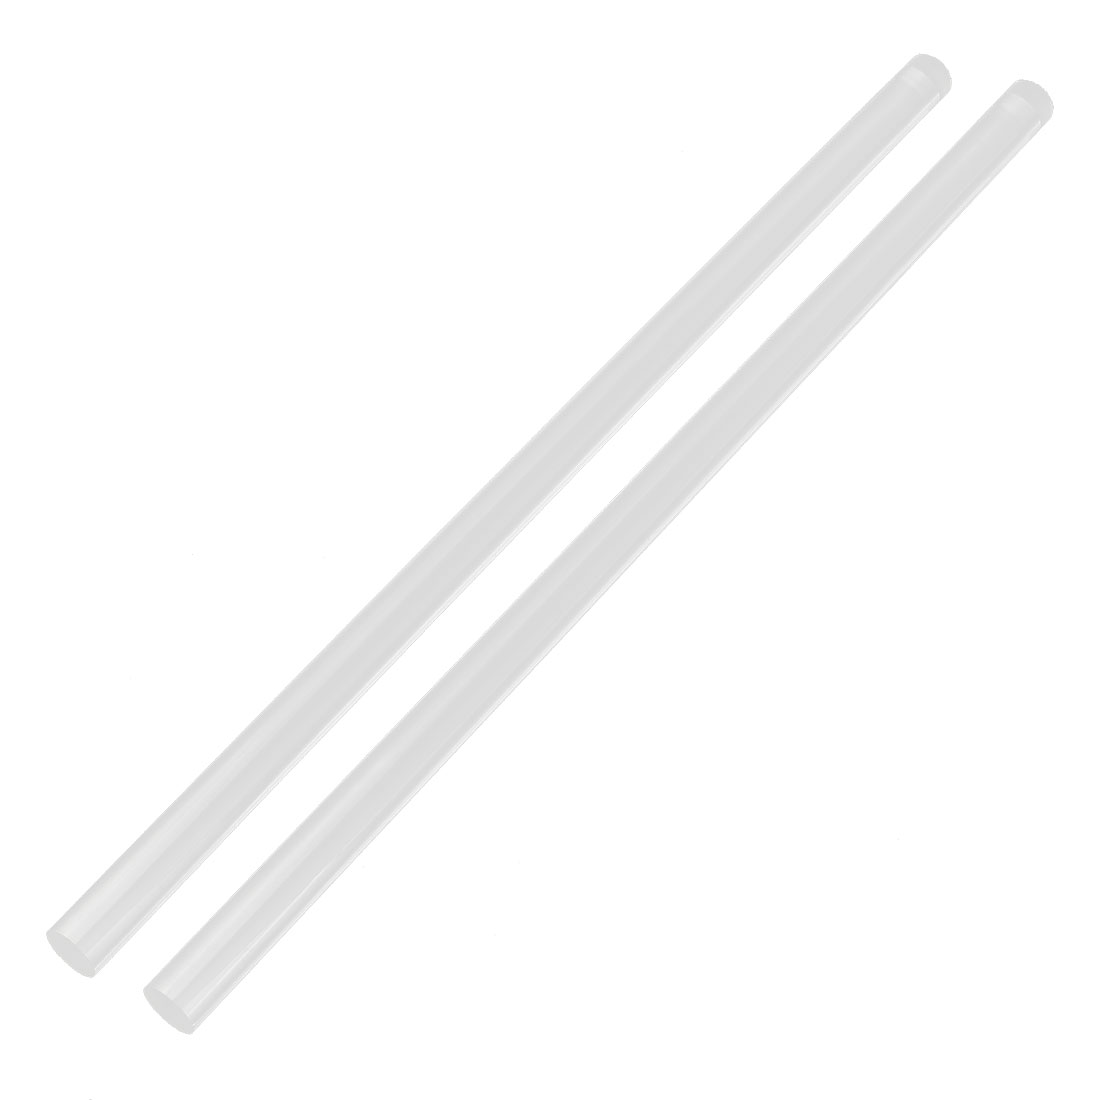 "2Pcs 12mm Dia Clear Round Acrylic Rod PMMA Extruded Bar 12"" Length"